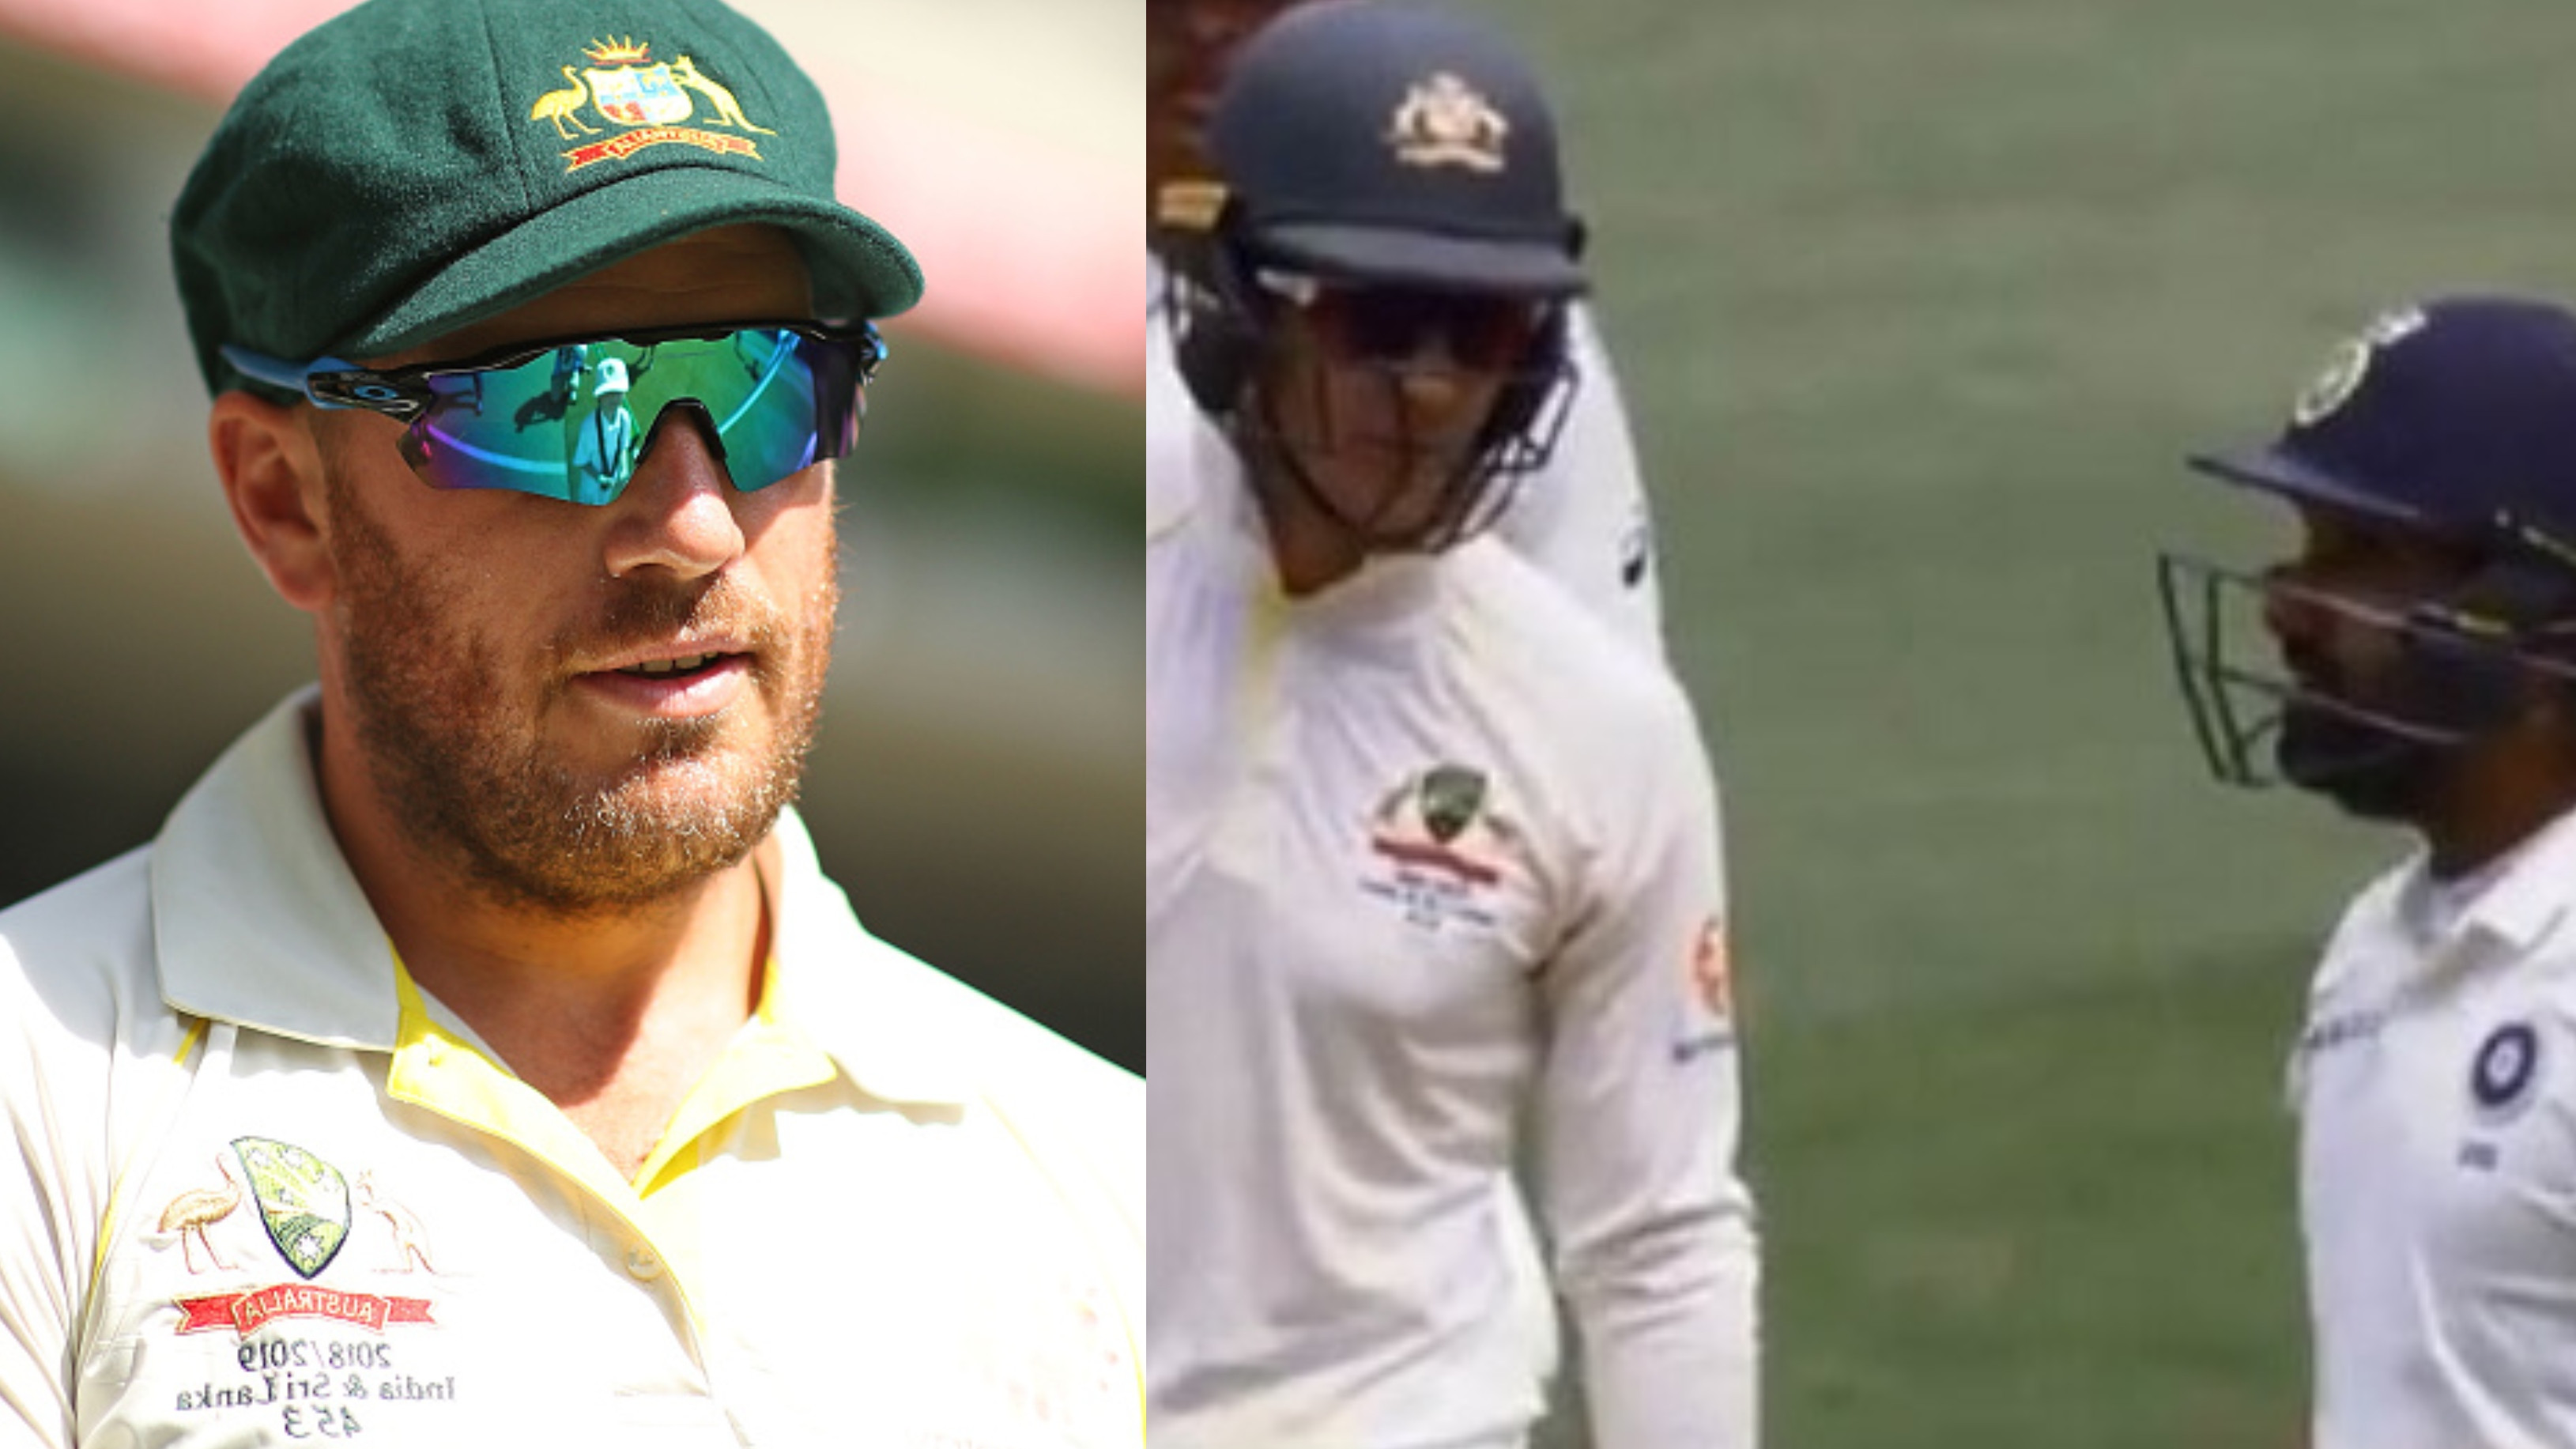 AUS v IND 2018-19: Aaron Finch speaks on Tim Paine's banter with Rohit Sharma at MCG